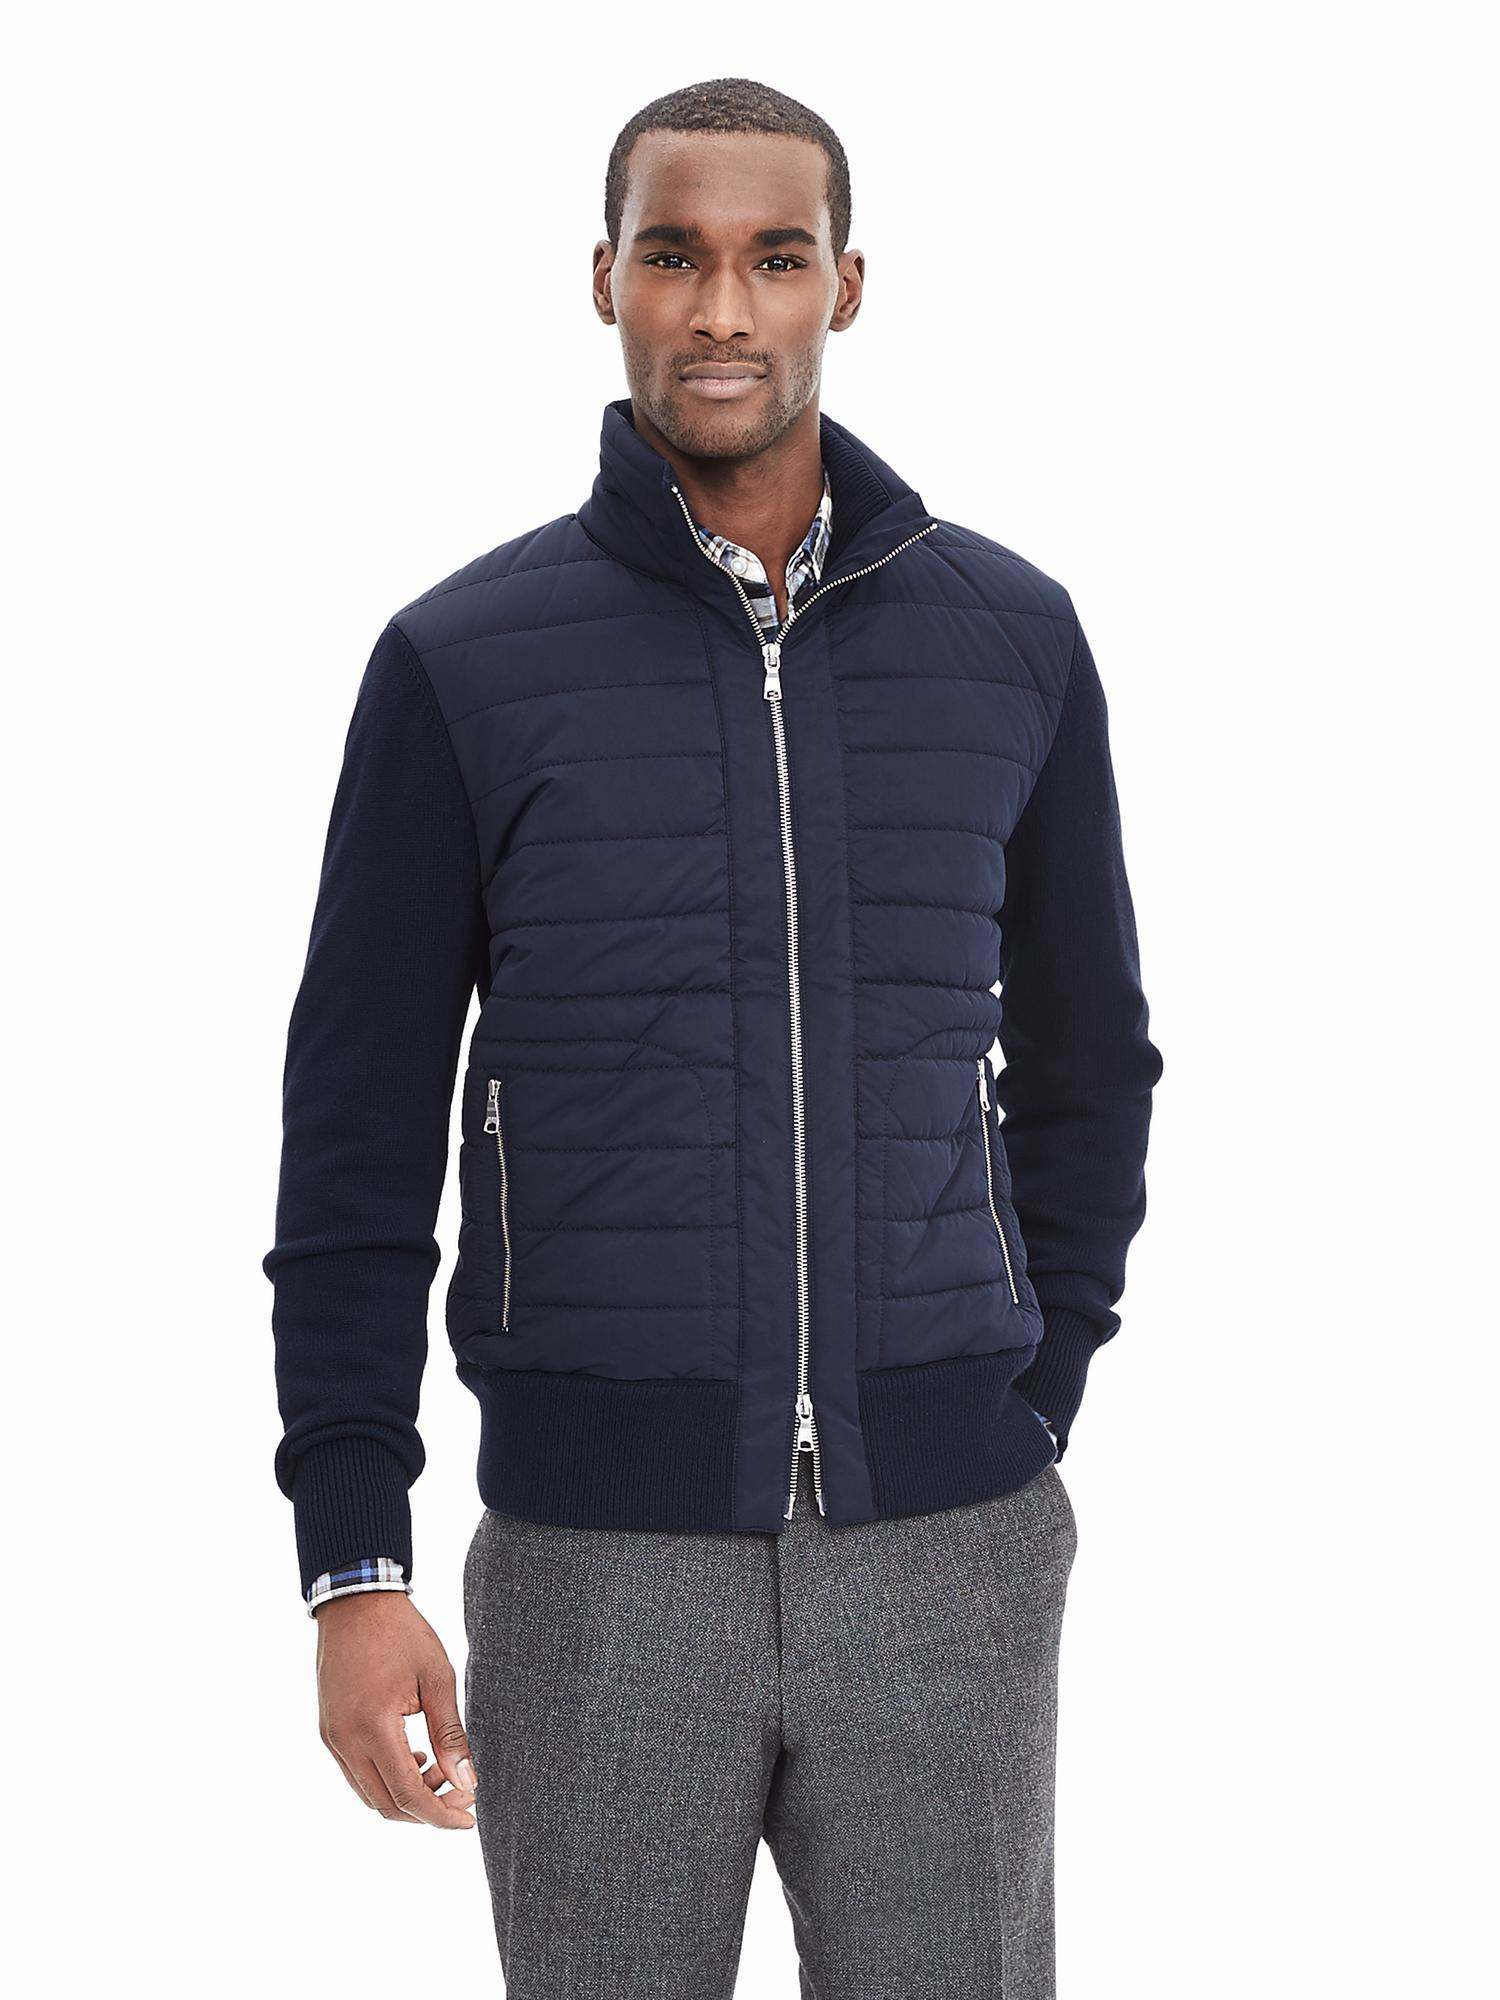 Banana Republic Navy Quilted Zip Jacket In Blue For Men Lyst